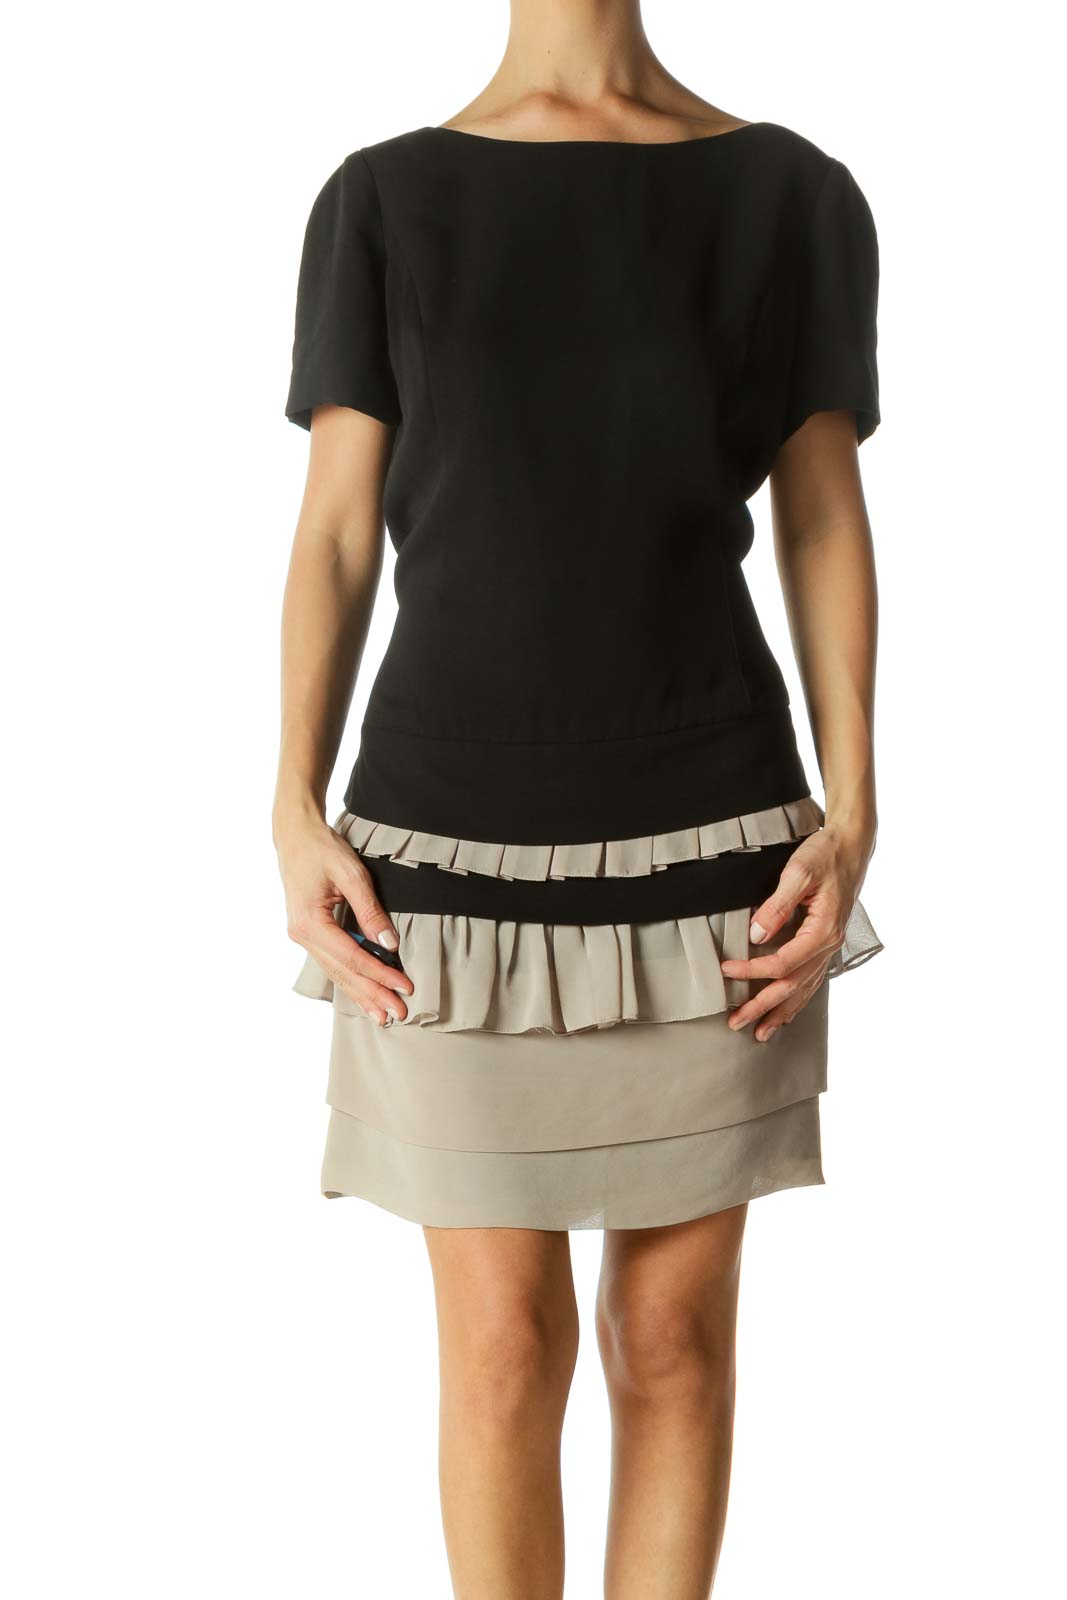 Black Beige Round Neck Short Sleeve Flared Cocktail Dress Front